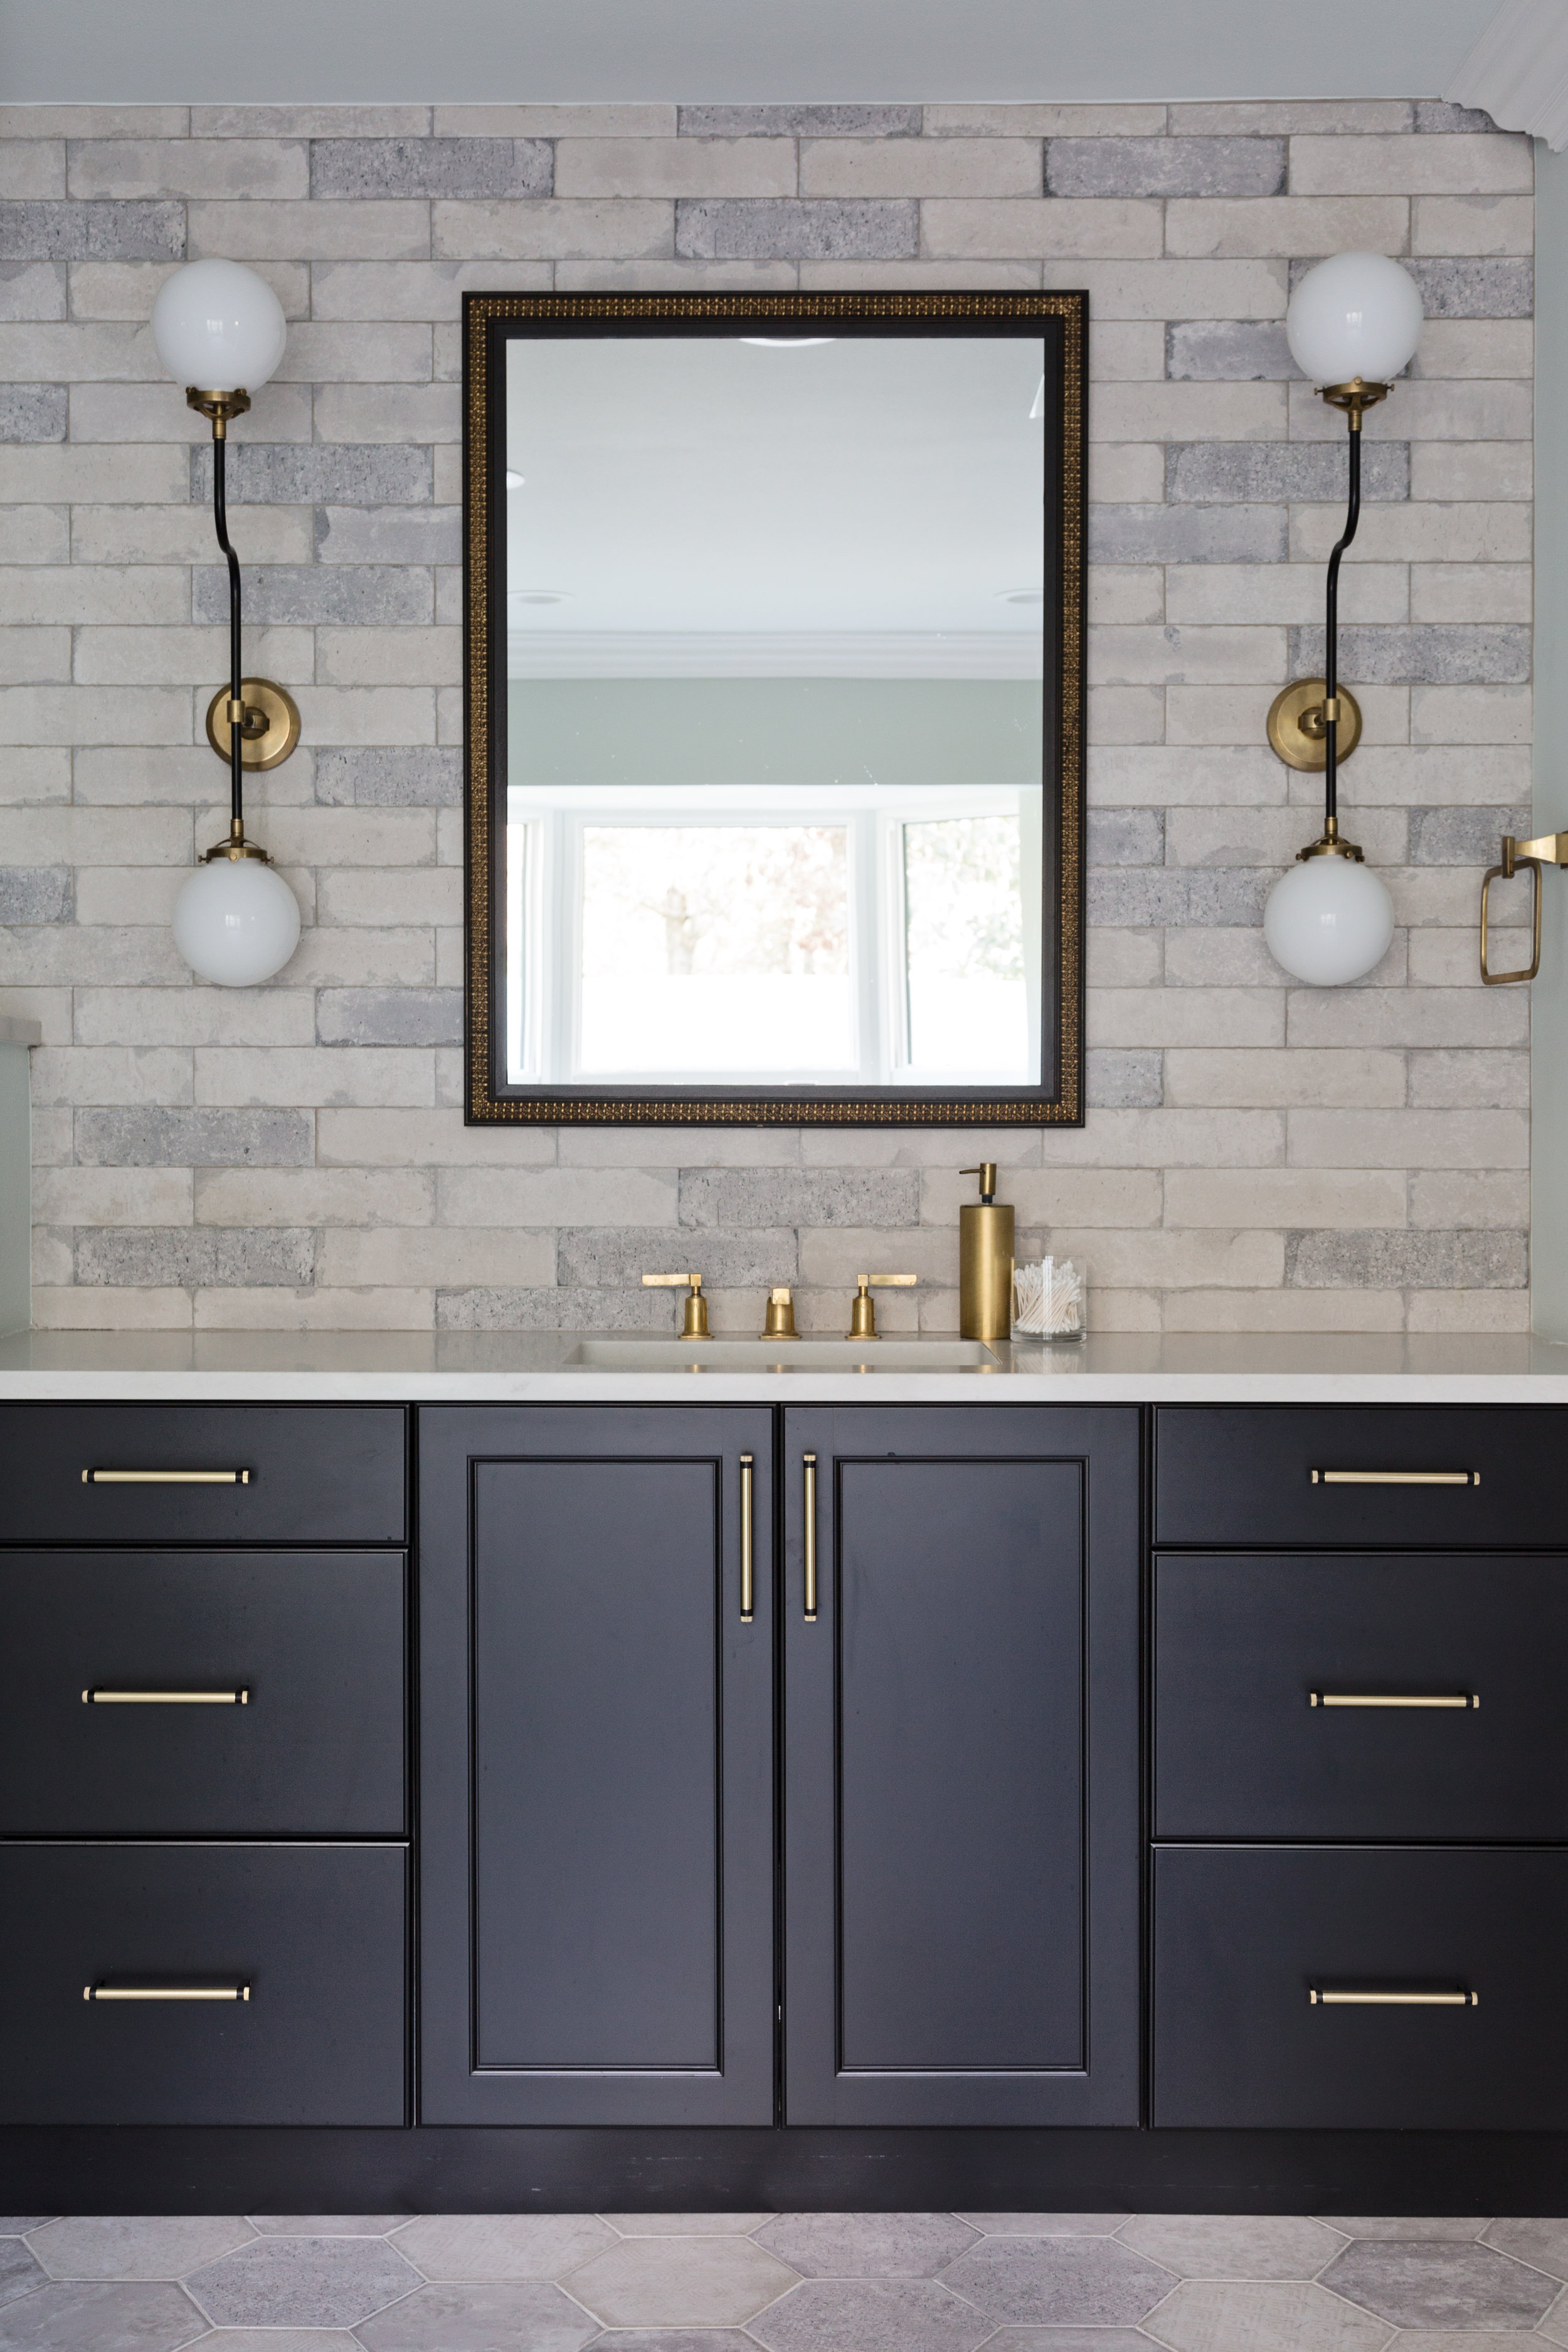 Elements of Brick, Hex, and Brass  for this Master Bathroom designed by Lisa Gilmore Design